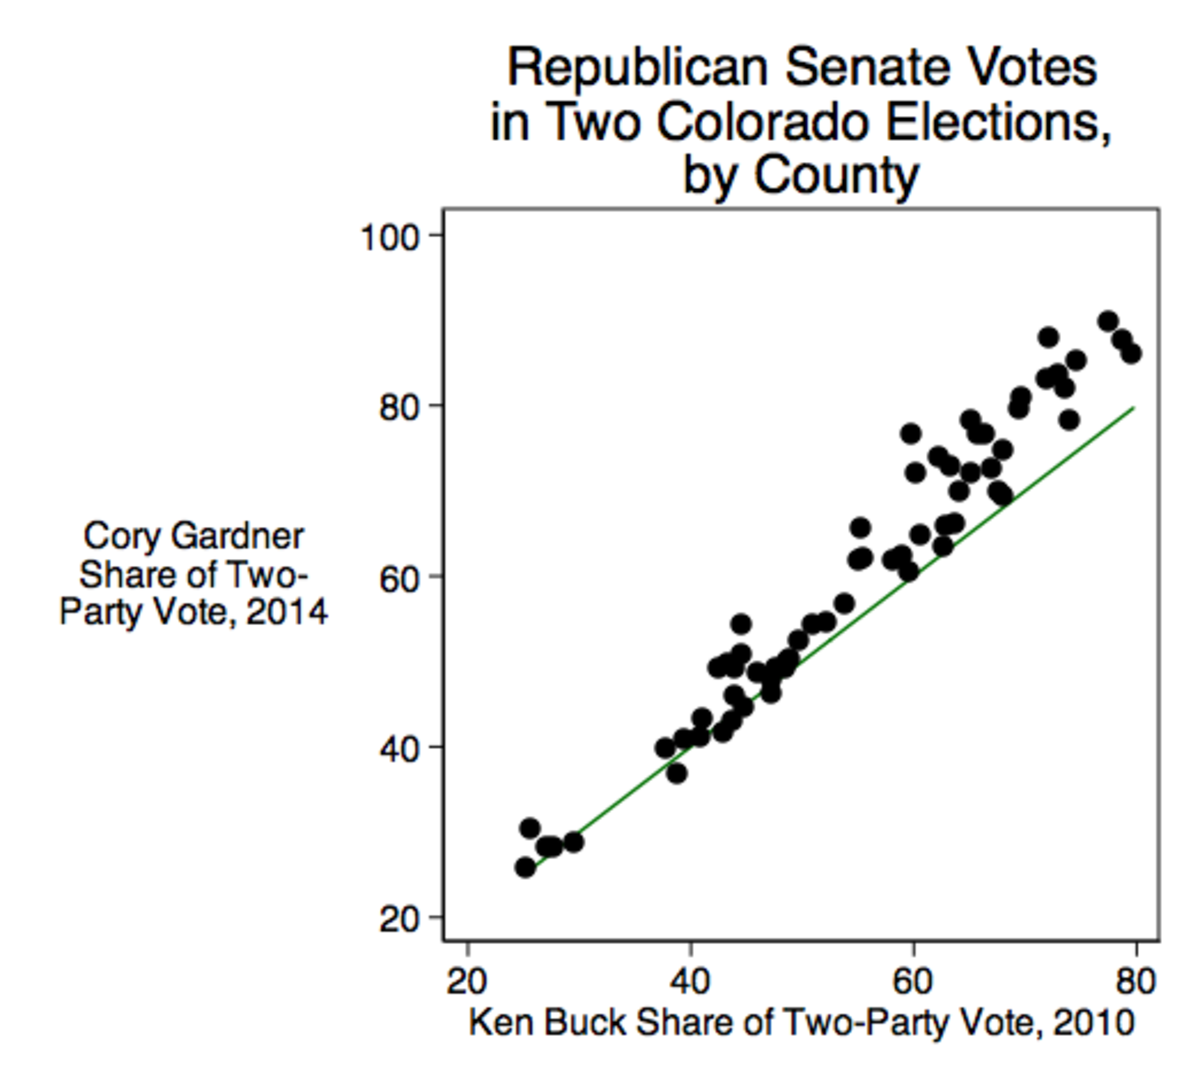 CO-sen-votes-2010-and-2014